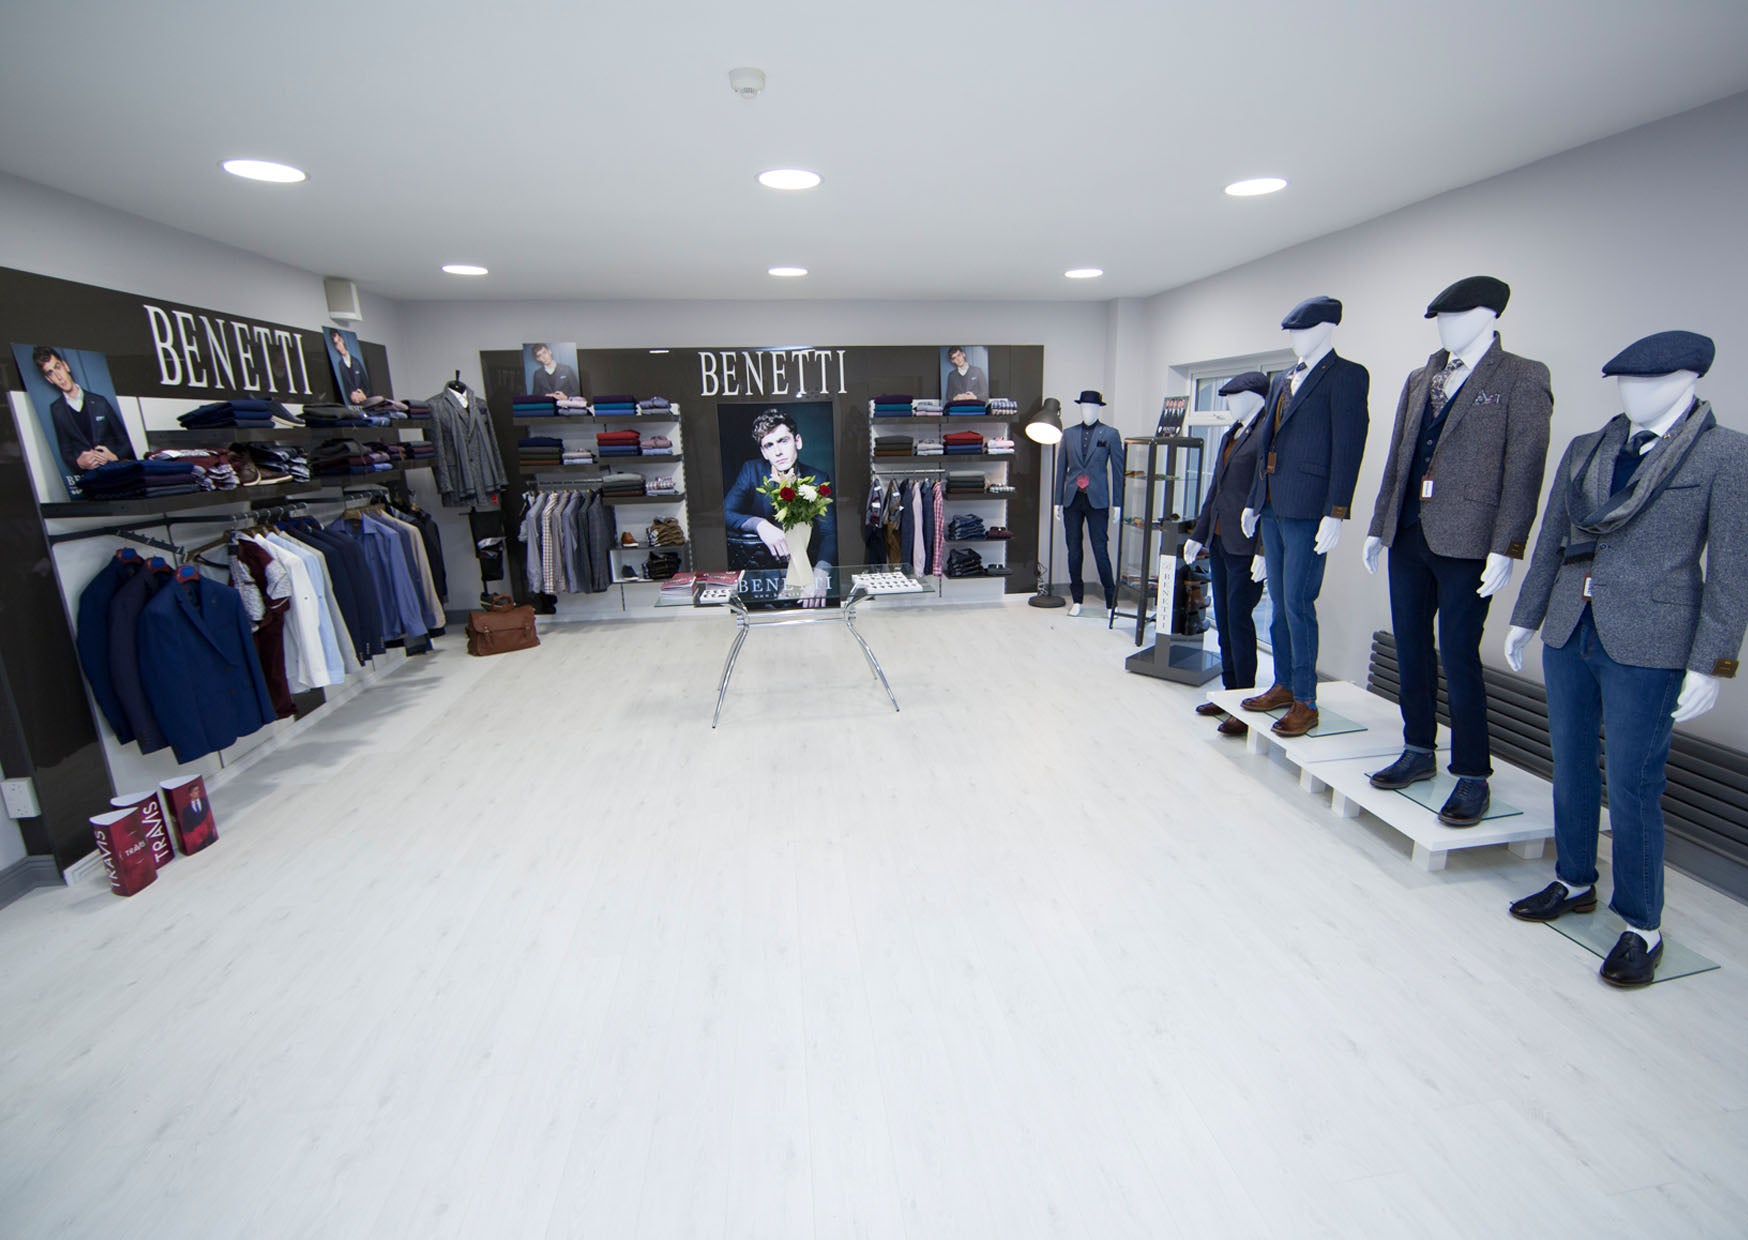 Benetti Menswear, benetti Menswear Ireland, Benetti, Menswear, Ireland, Suits, Showroom